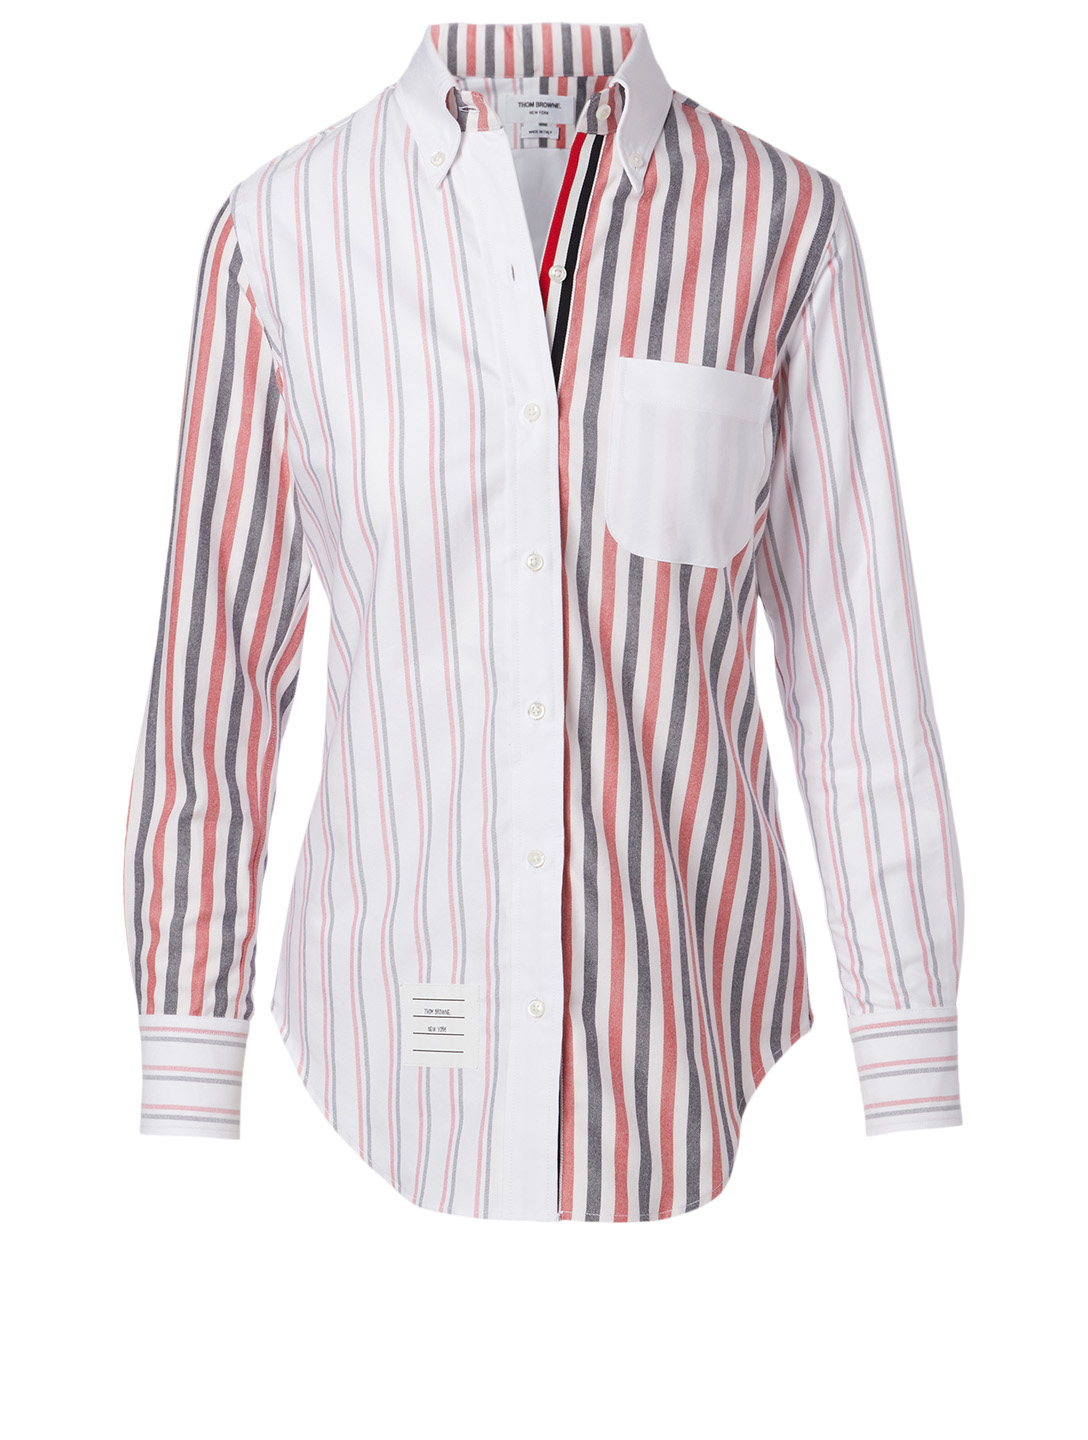 THOM BROWNE Cotton Shirt In Mix Stripe Print Women's Multi